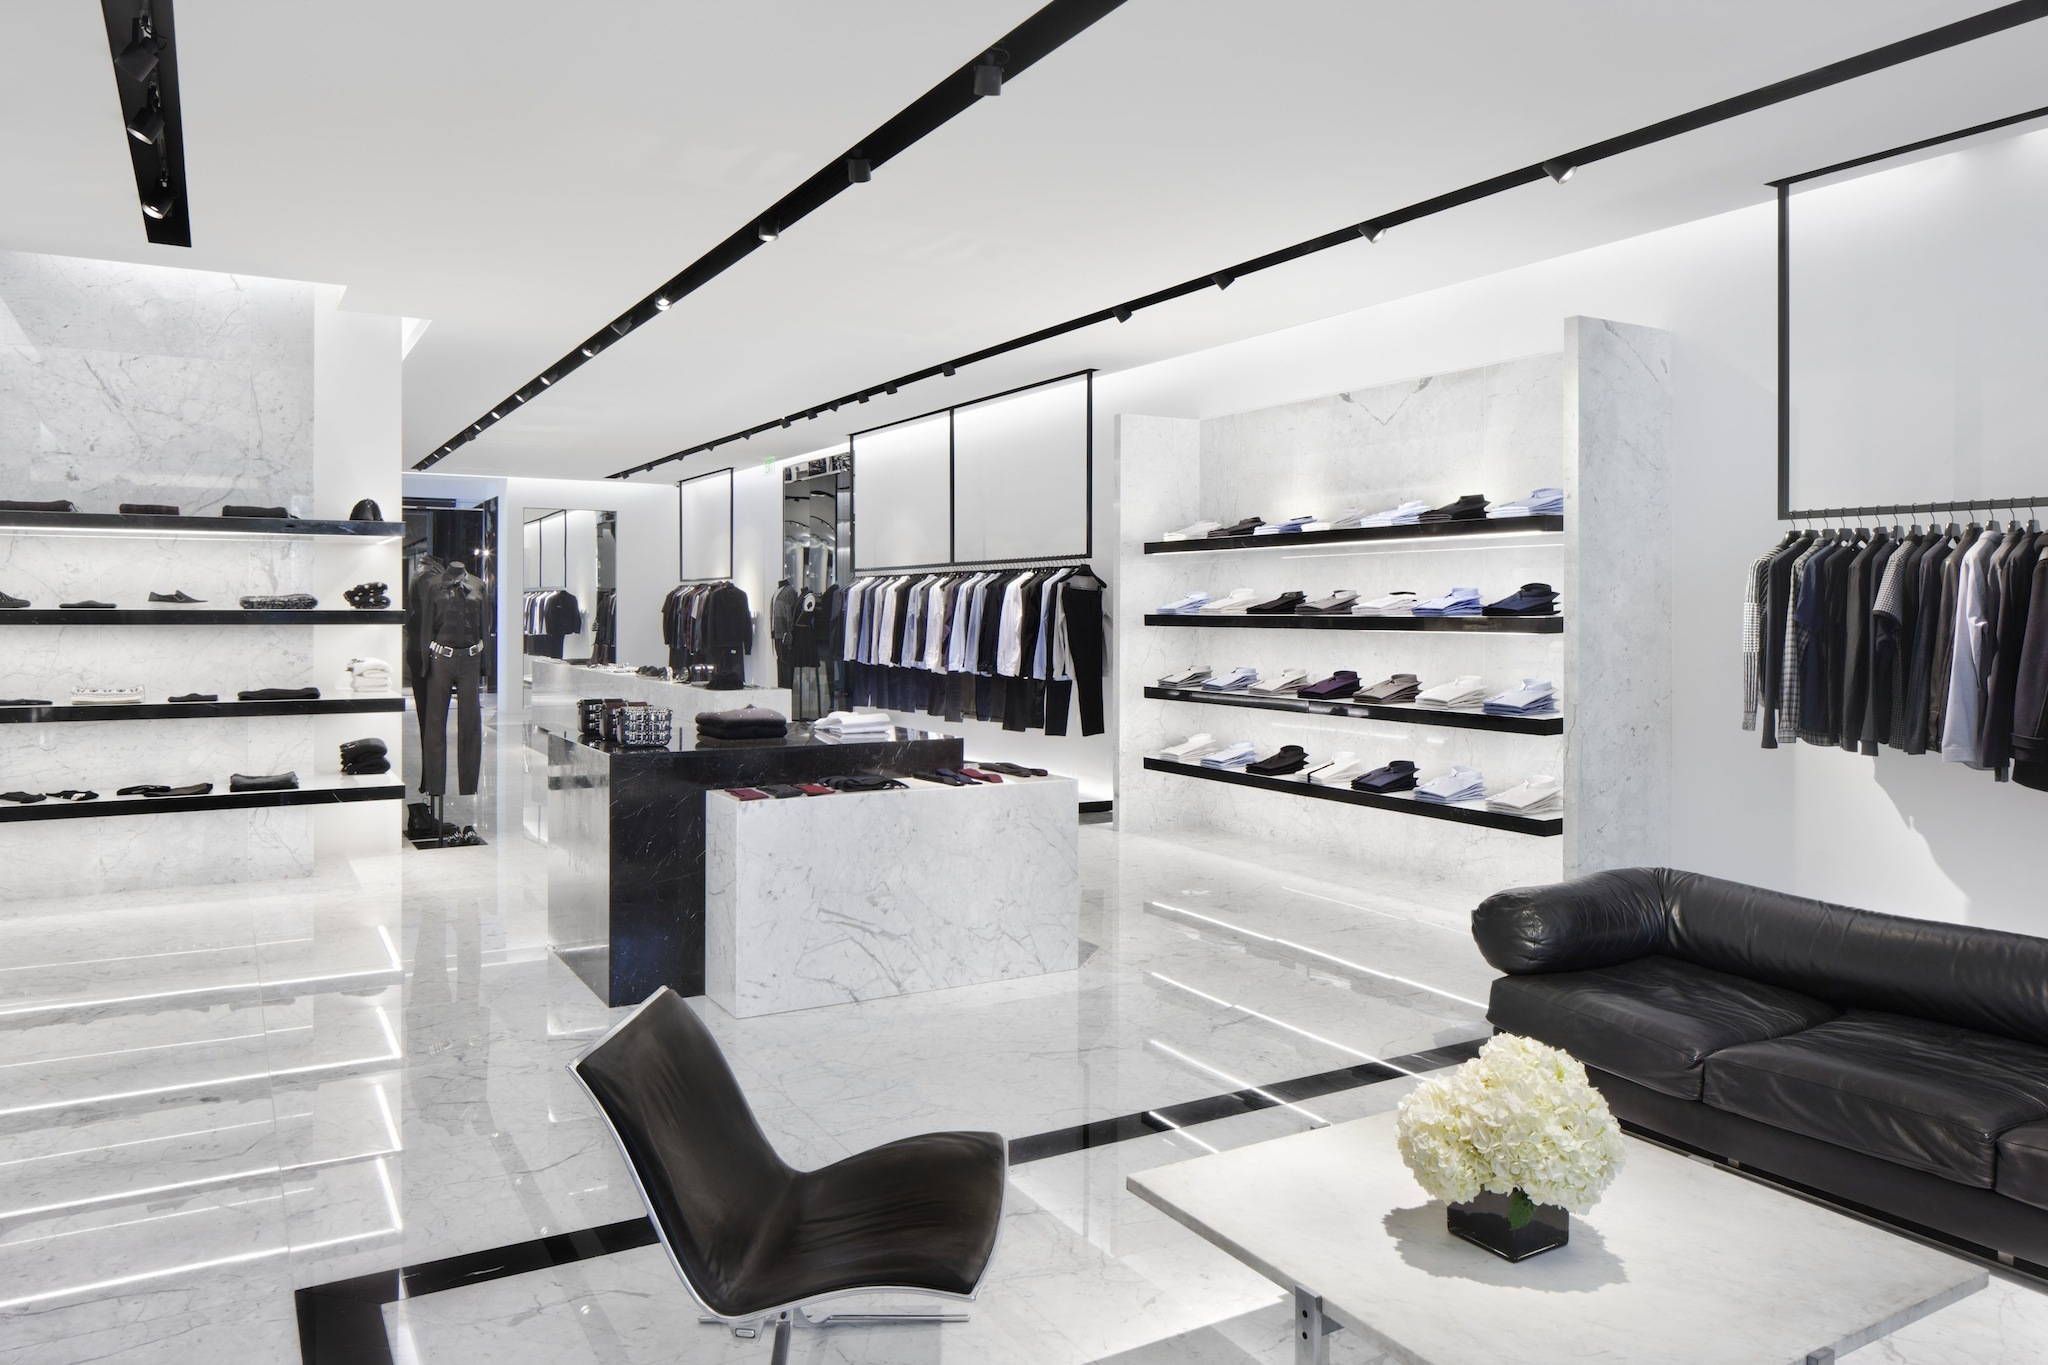 The best store openings of 2014